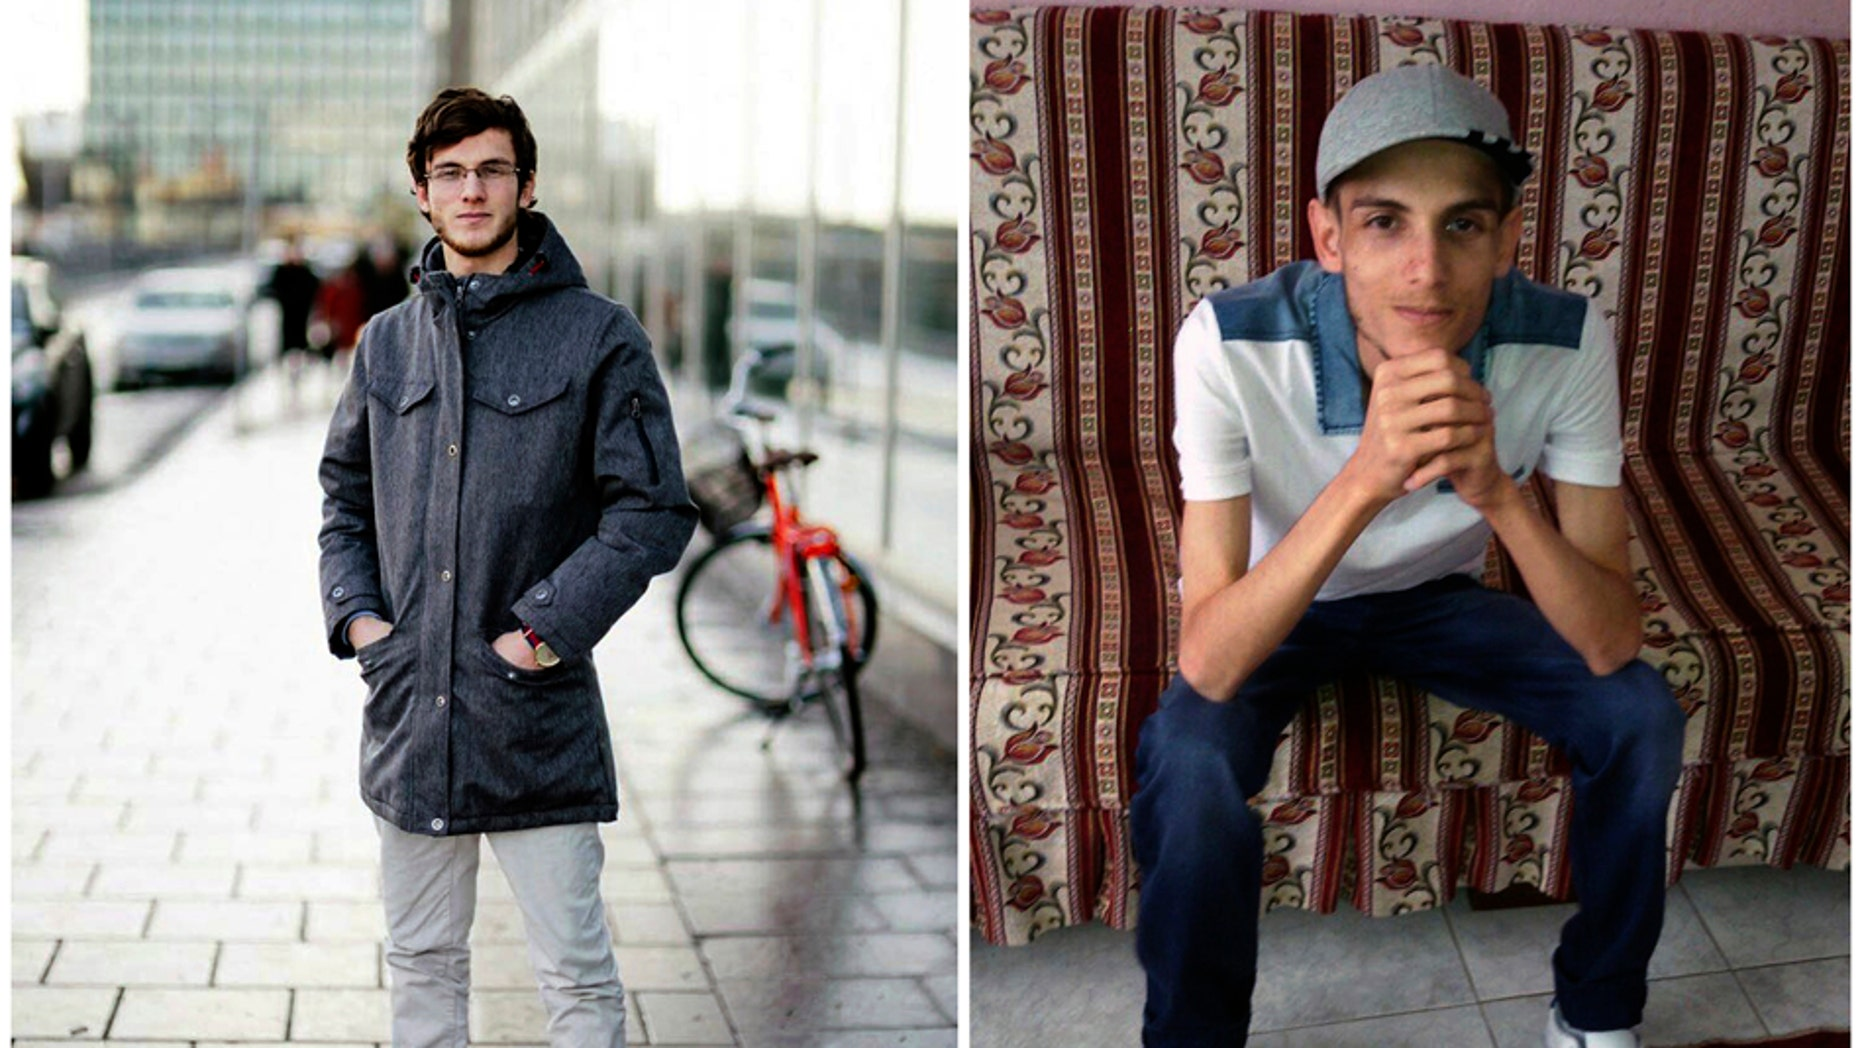 """In this combination of two photos of Omar Alshogre, a 21-year Syrian former detainee, now living in Stockholm, Sweden. The left picture is of Alshogre taken on January 2017 in Stockholm, Sweden. The right picture is of Alshogre in July 2015 in Antakya, Turkey, a month after he got out of Syria's Saydnaya prison, near Damascus. While in detention, Alshogre said he heard men escorted to be hanged and had himself been called for """"execution"""" but was spared after a brief trial."""